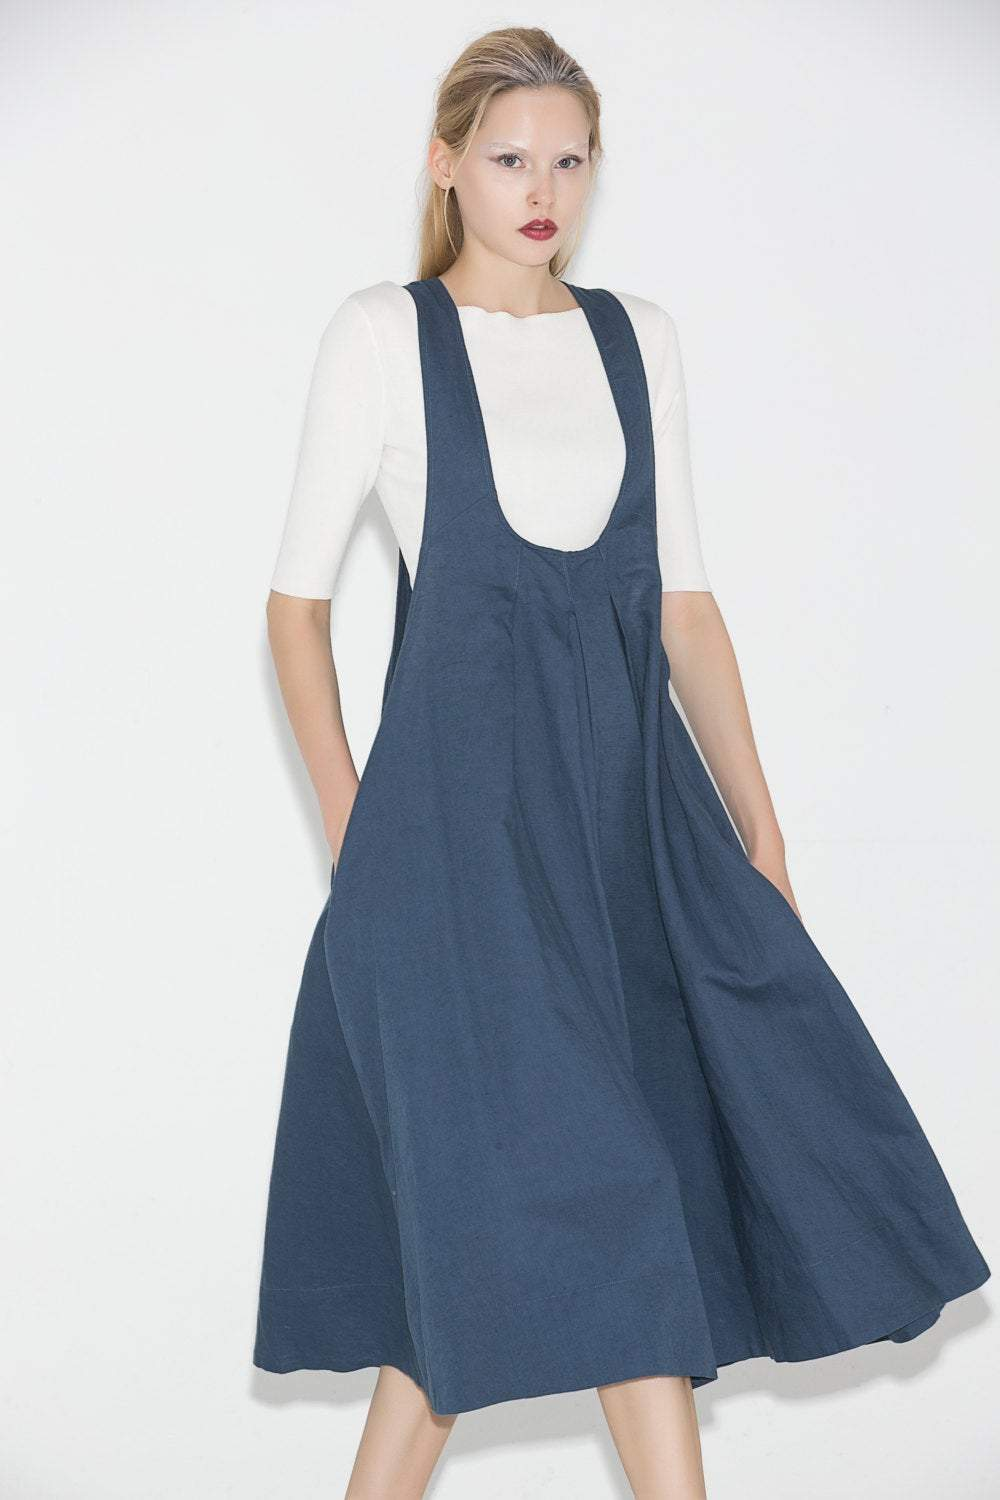 Pinafore Dress, womens dress, linen dress, blue dress, summer dress, loose dress, casual dress, maternity dress, midi dress C693